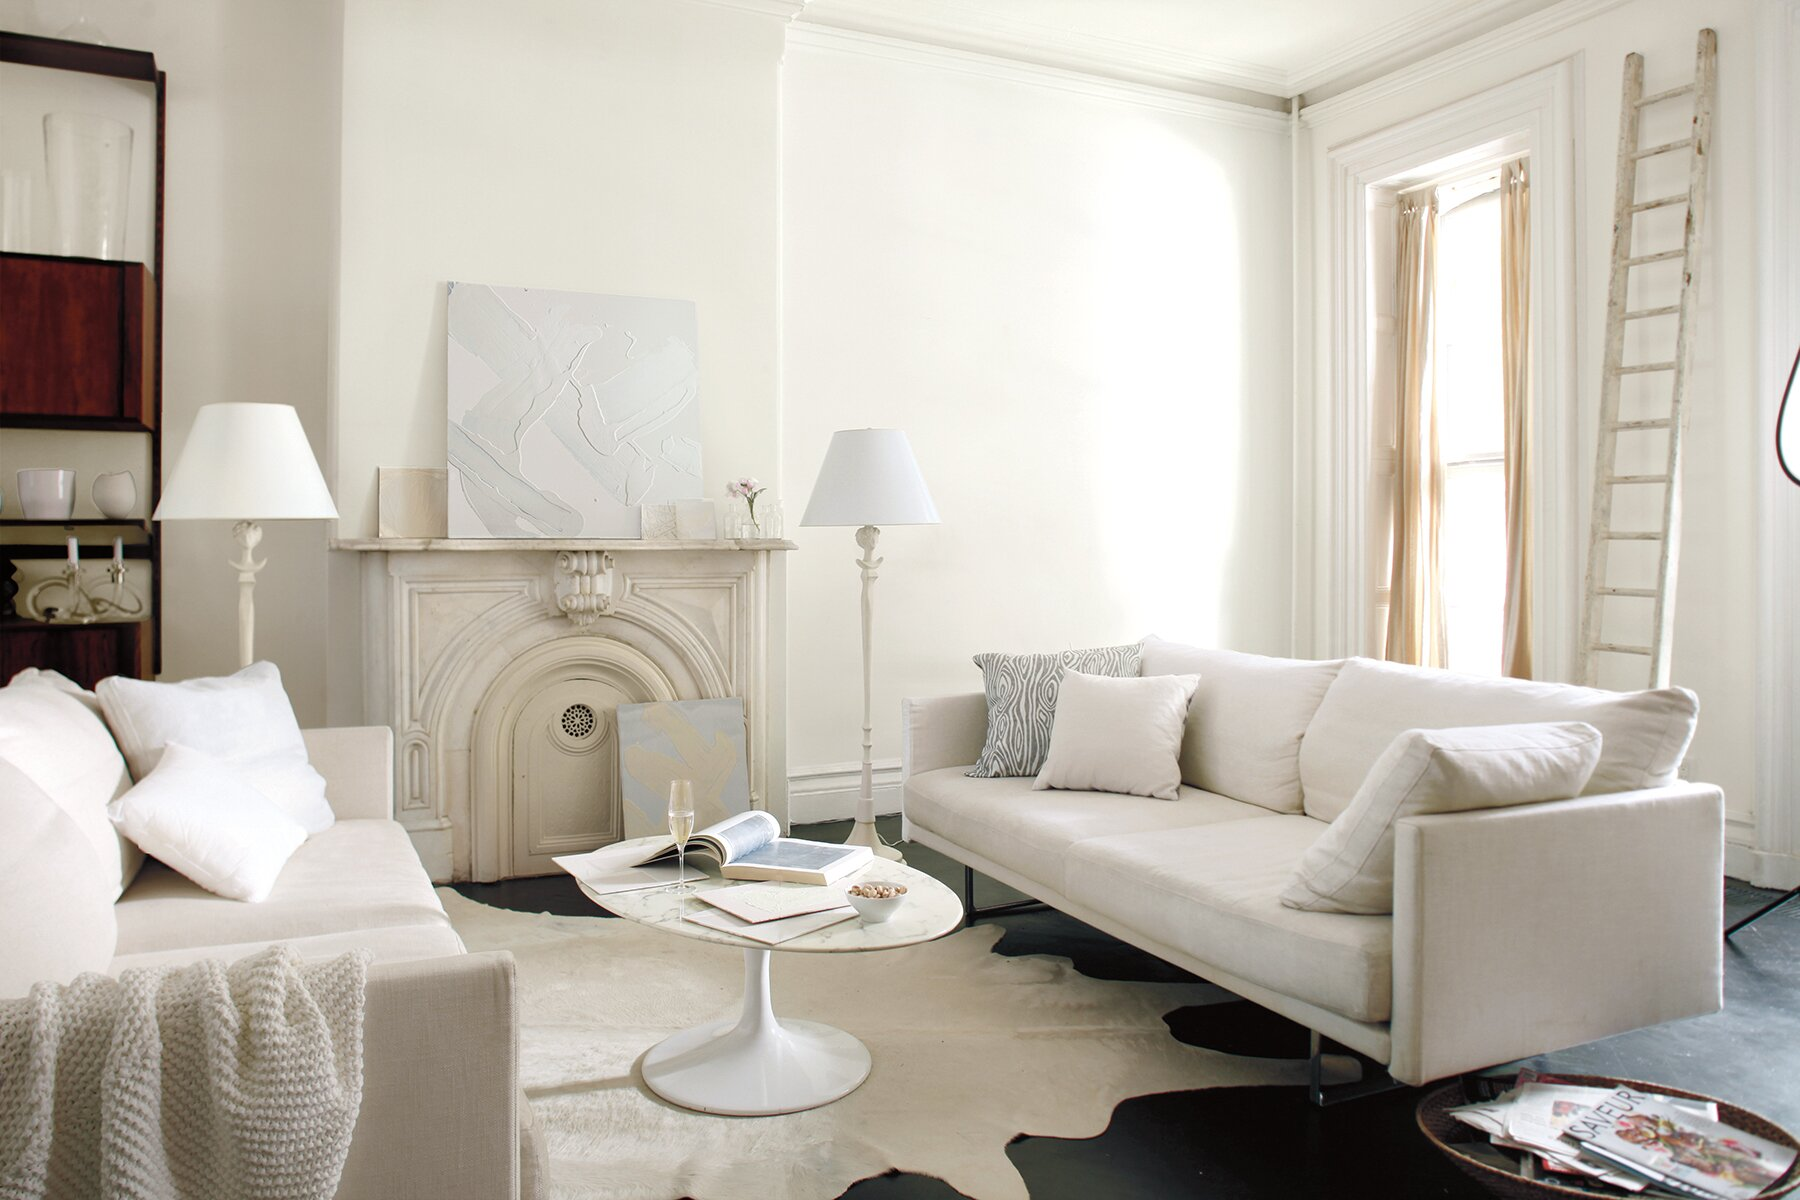 Benjamin Moore Simply White paint in living room